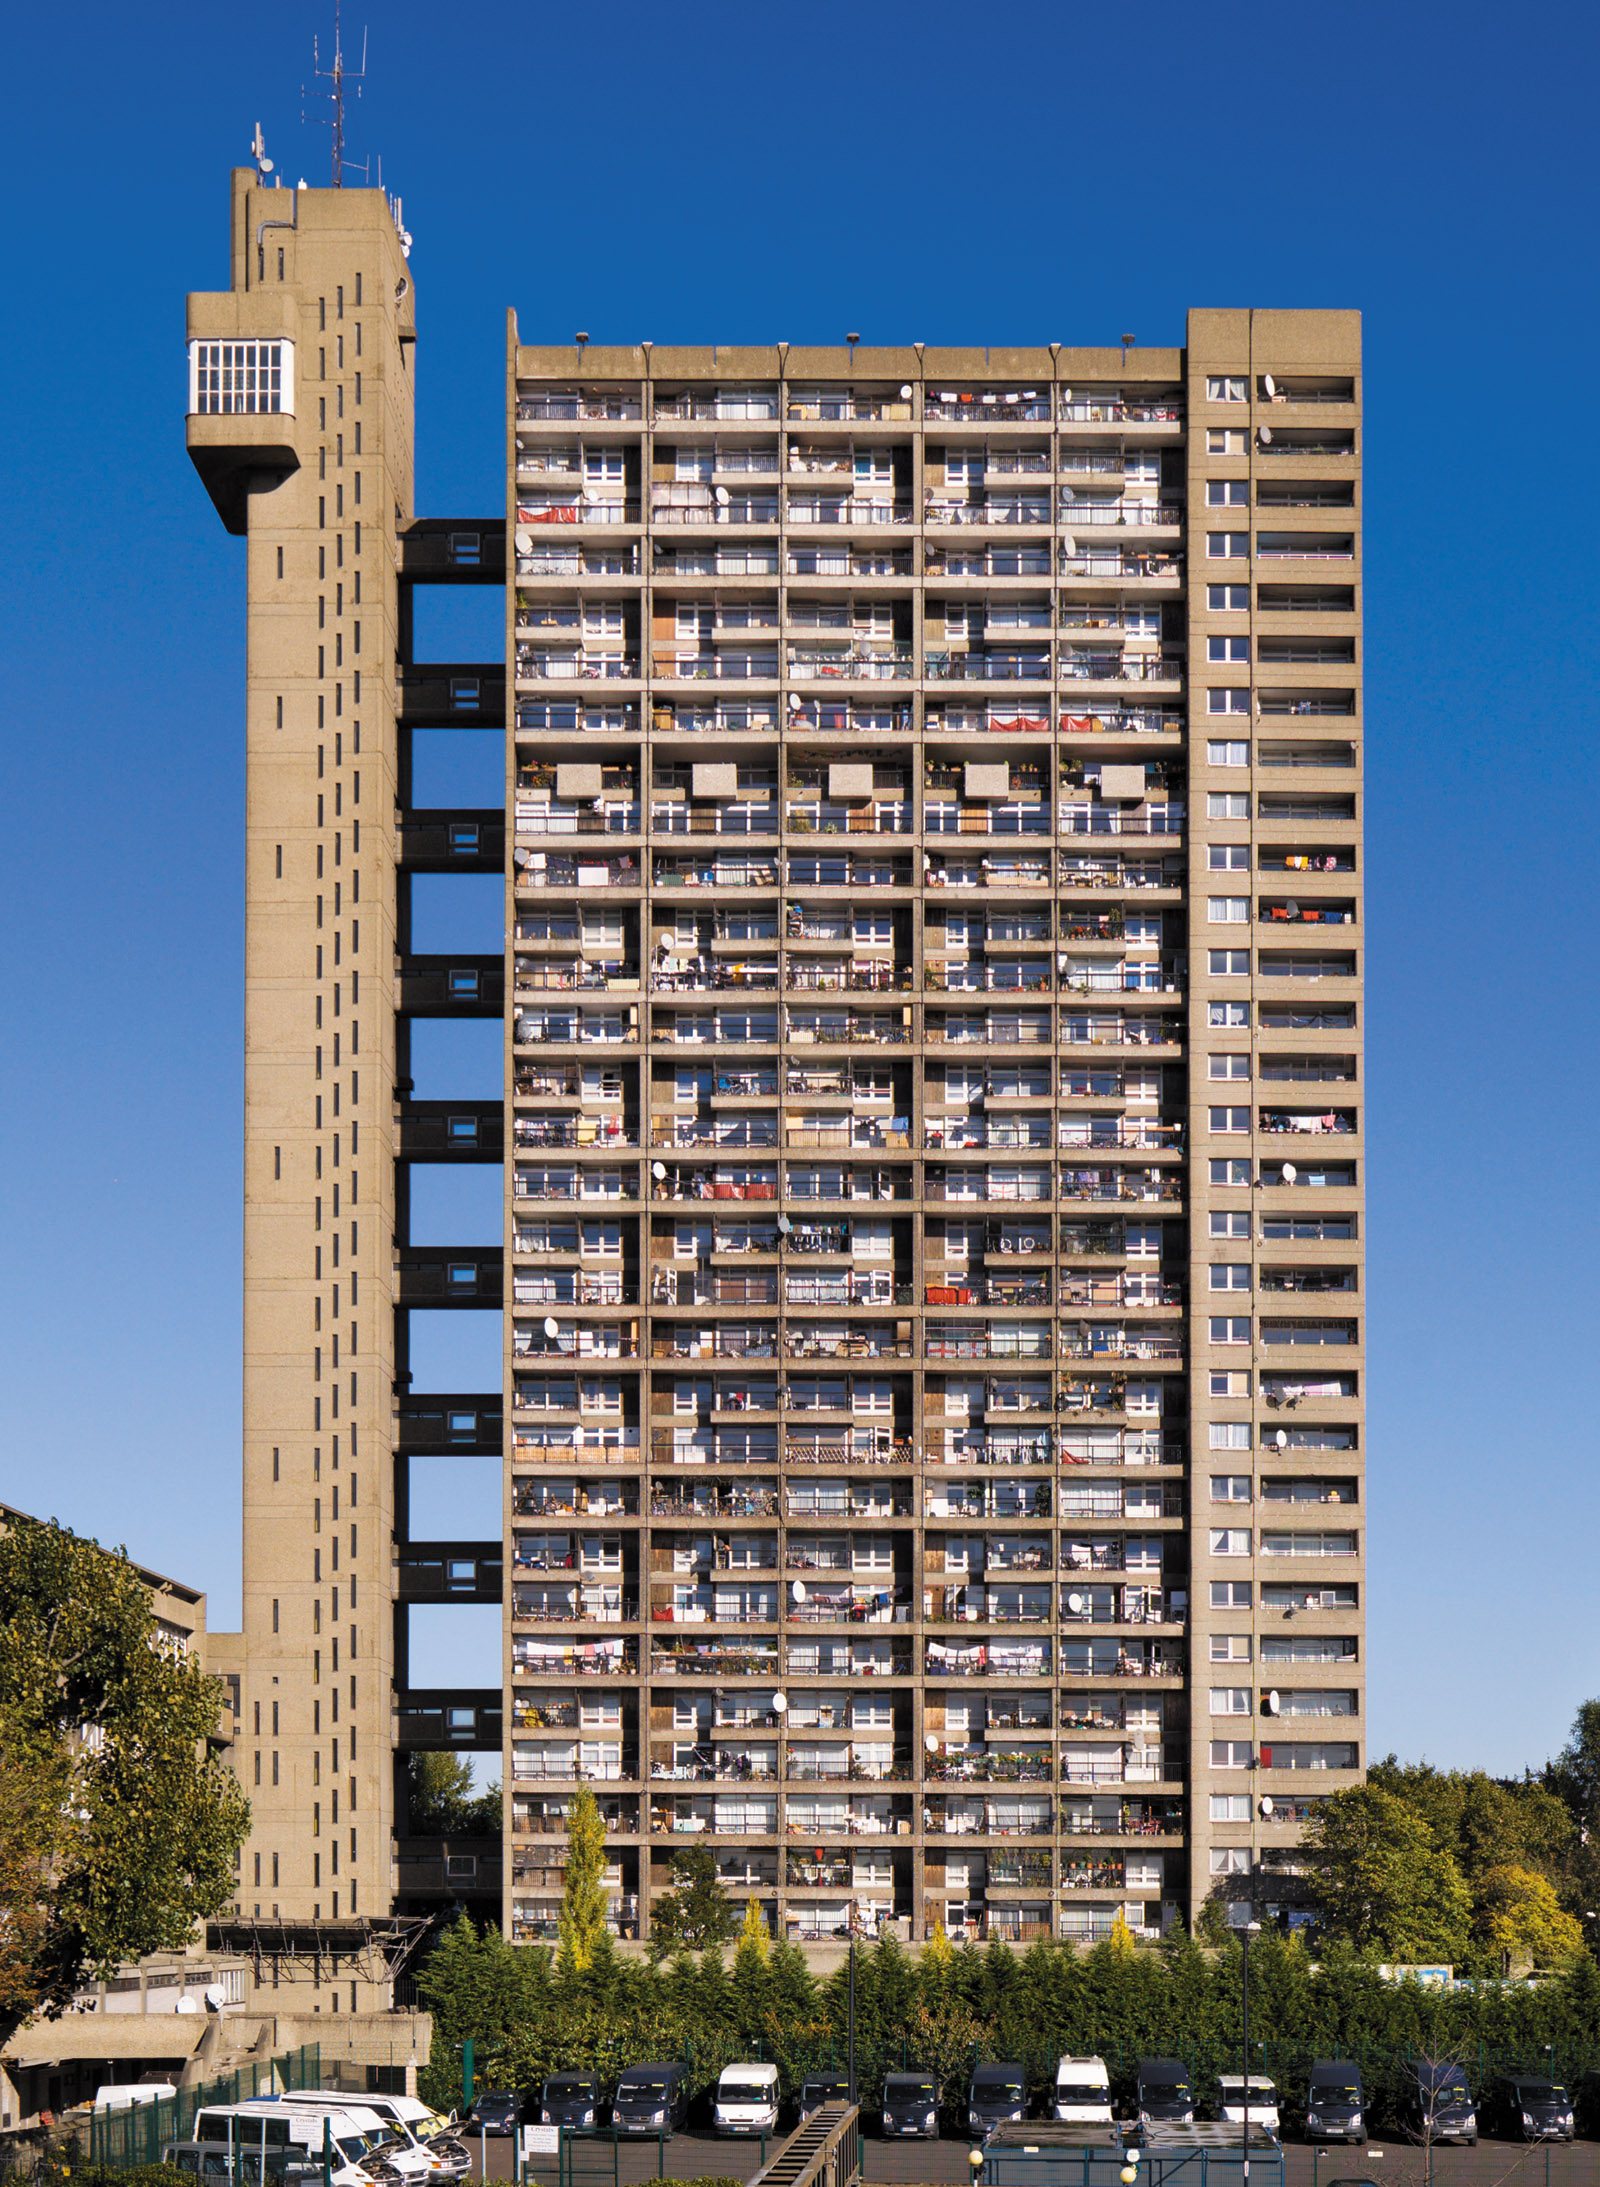 Trellick Tower, a thirty-one-story apartment block in North Kensington, London, designed by Ernő Goldfinger, 1966–1972; from Elain Harwood's Space, Hope, and Brutalism: English Architecture, 1945–1975